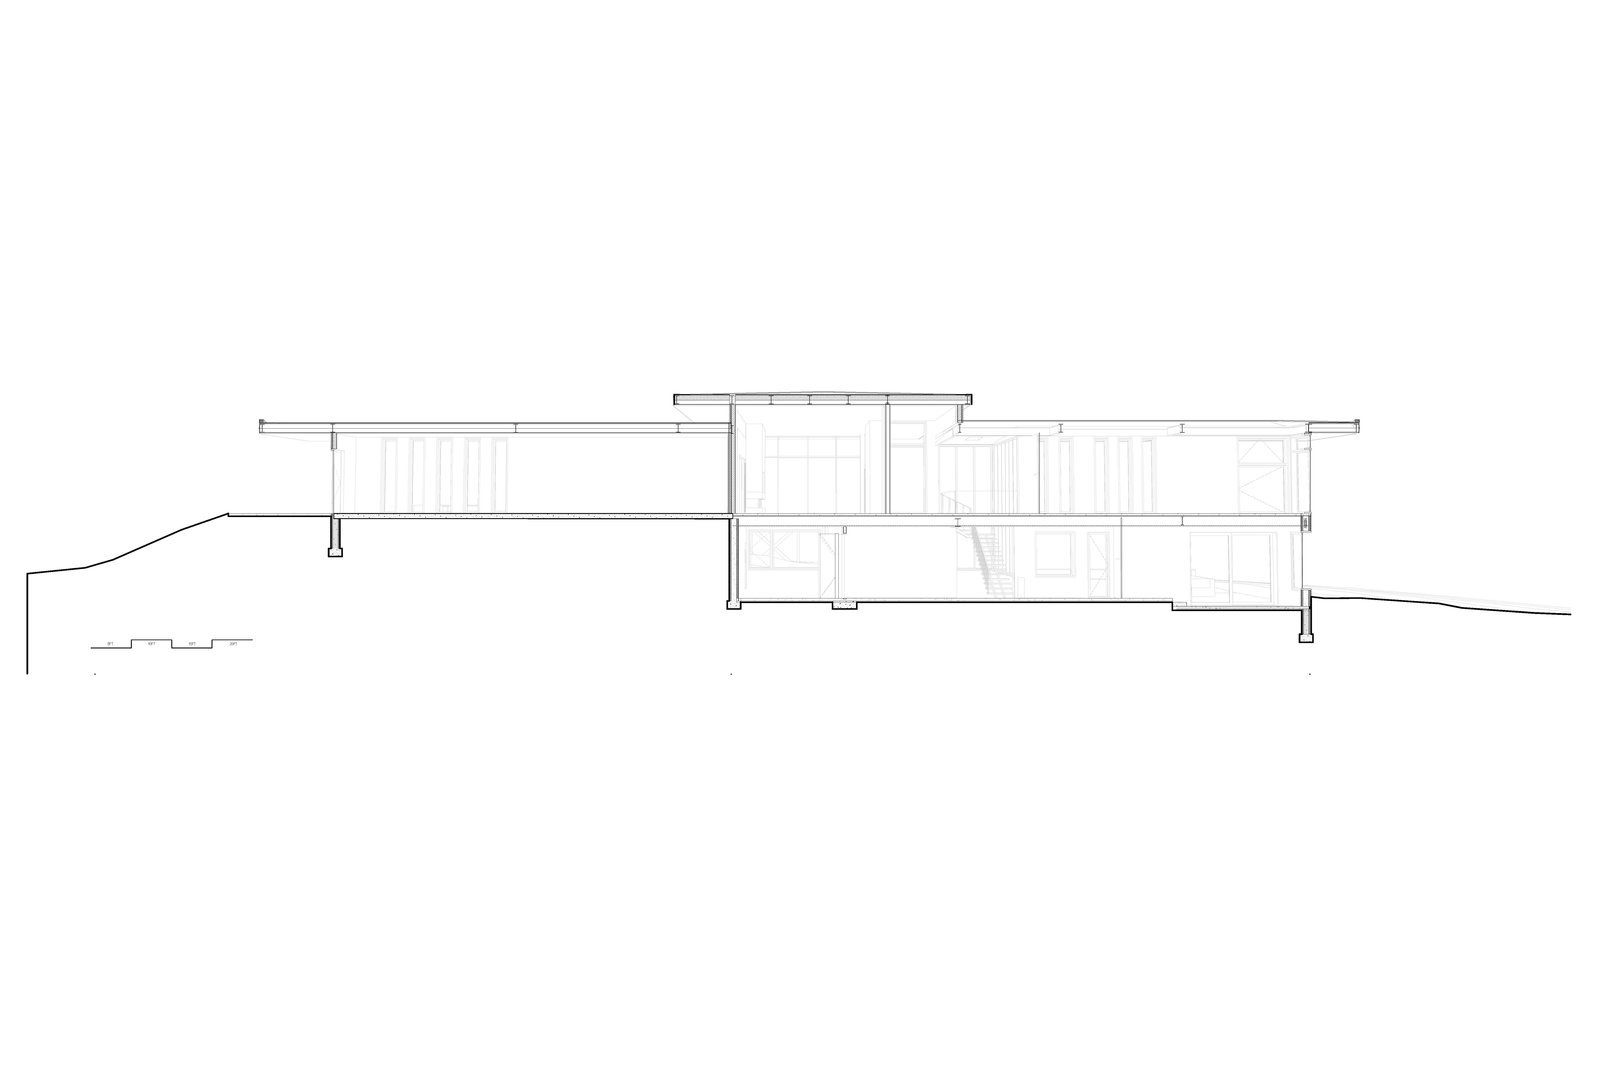 longitudinal sectional perspective drawing